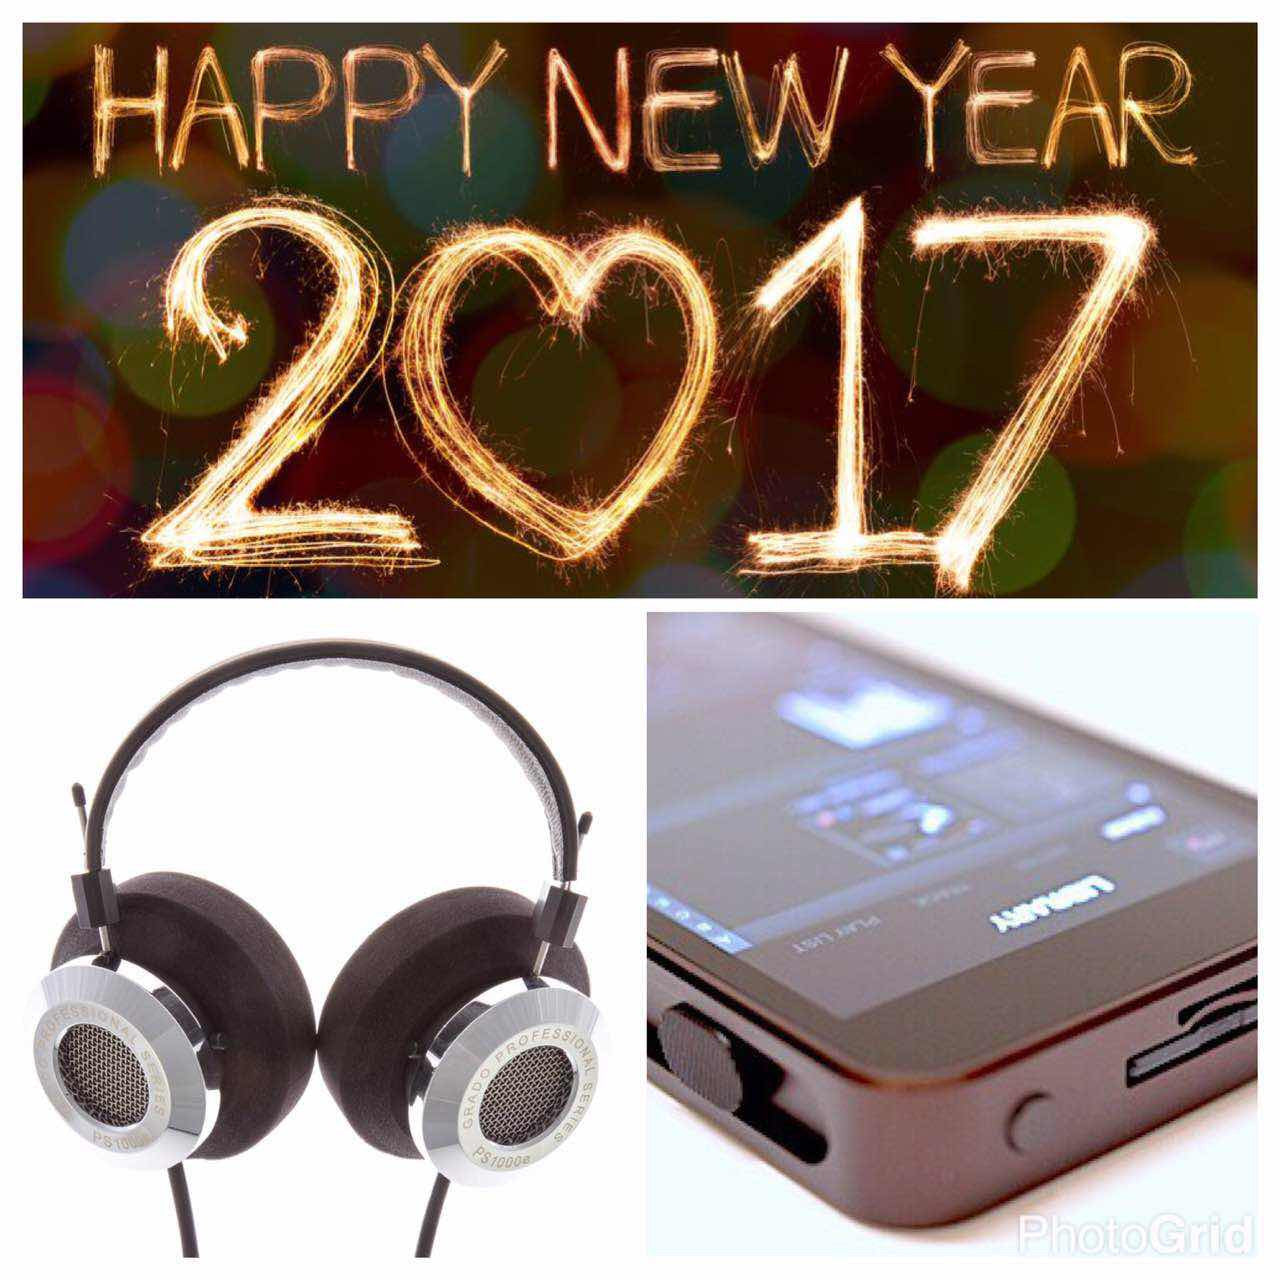 Jaben 2017 New Year Special! Grado PS1000e + Calyx M